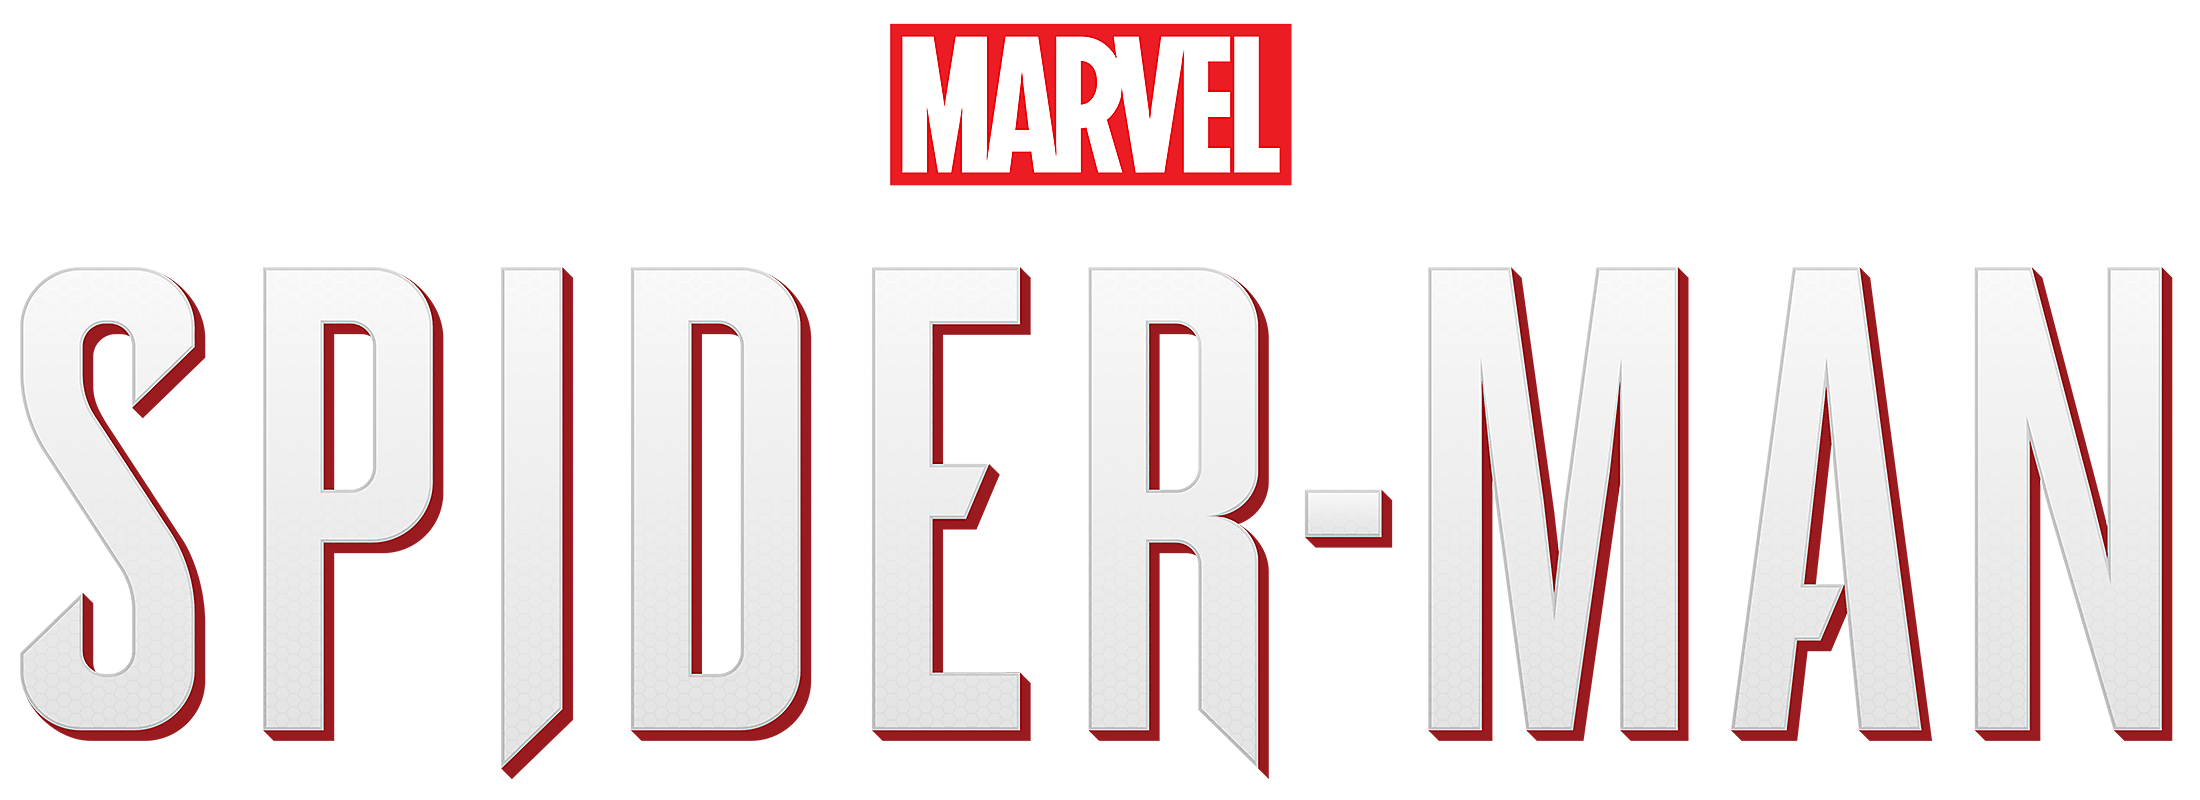 Logo Marvel Spider-Man